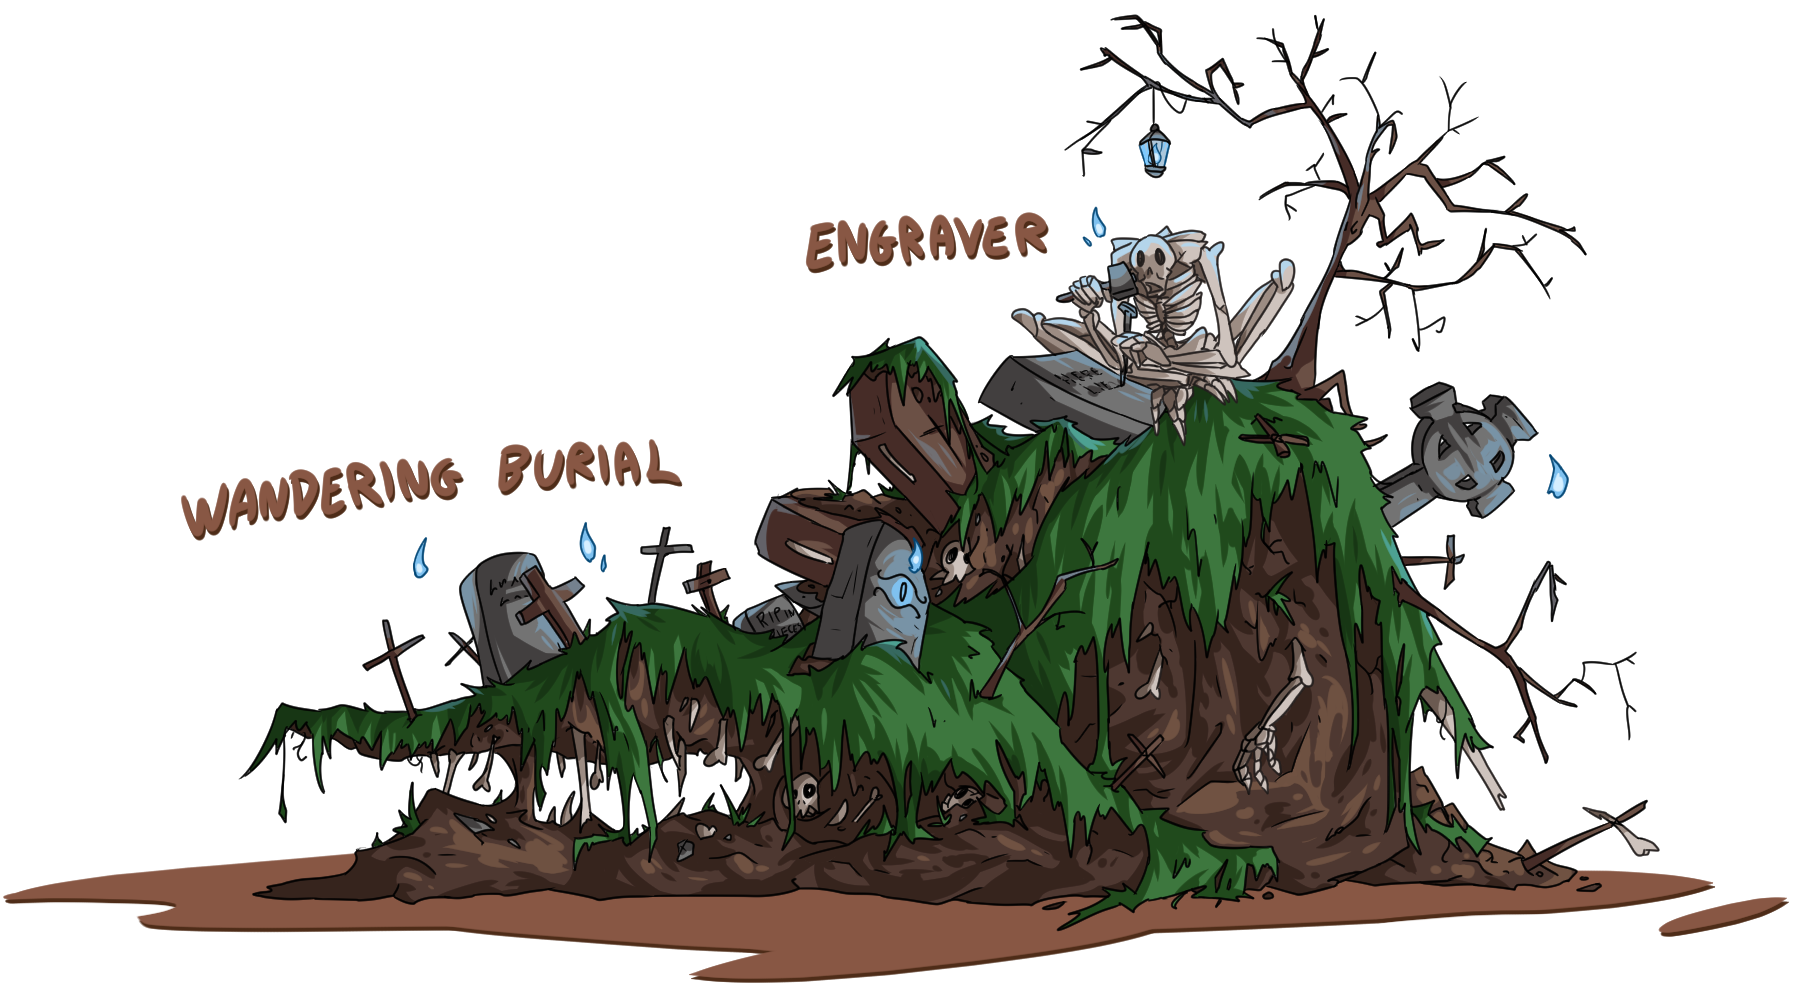 Wandering burial and Engraver by Seikame